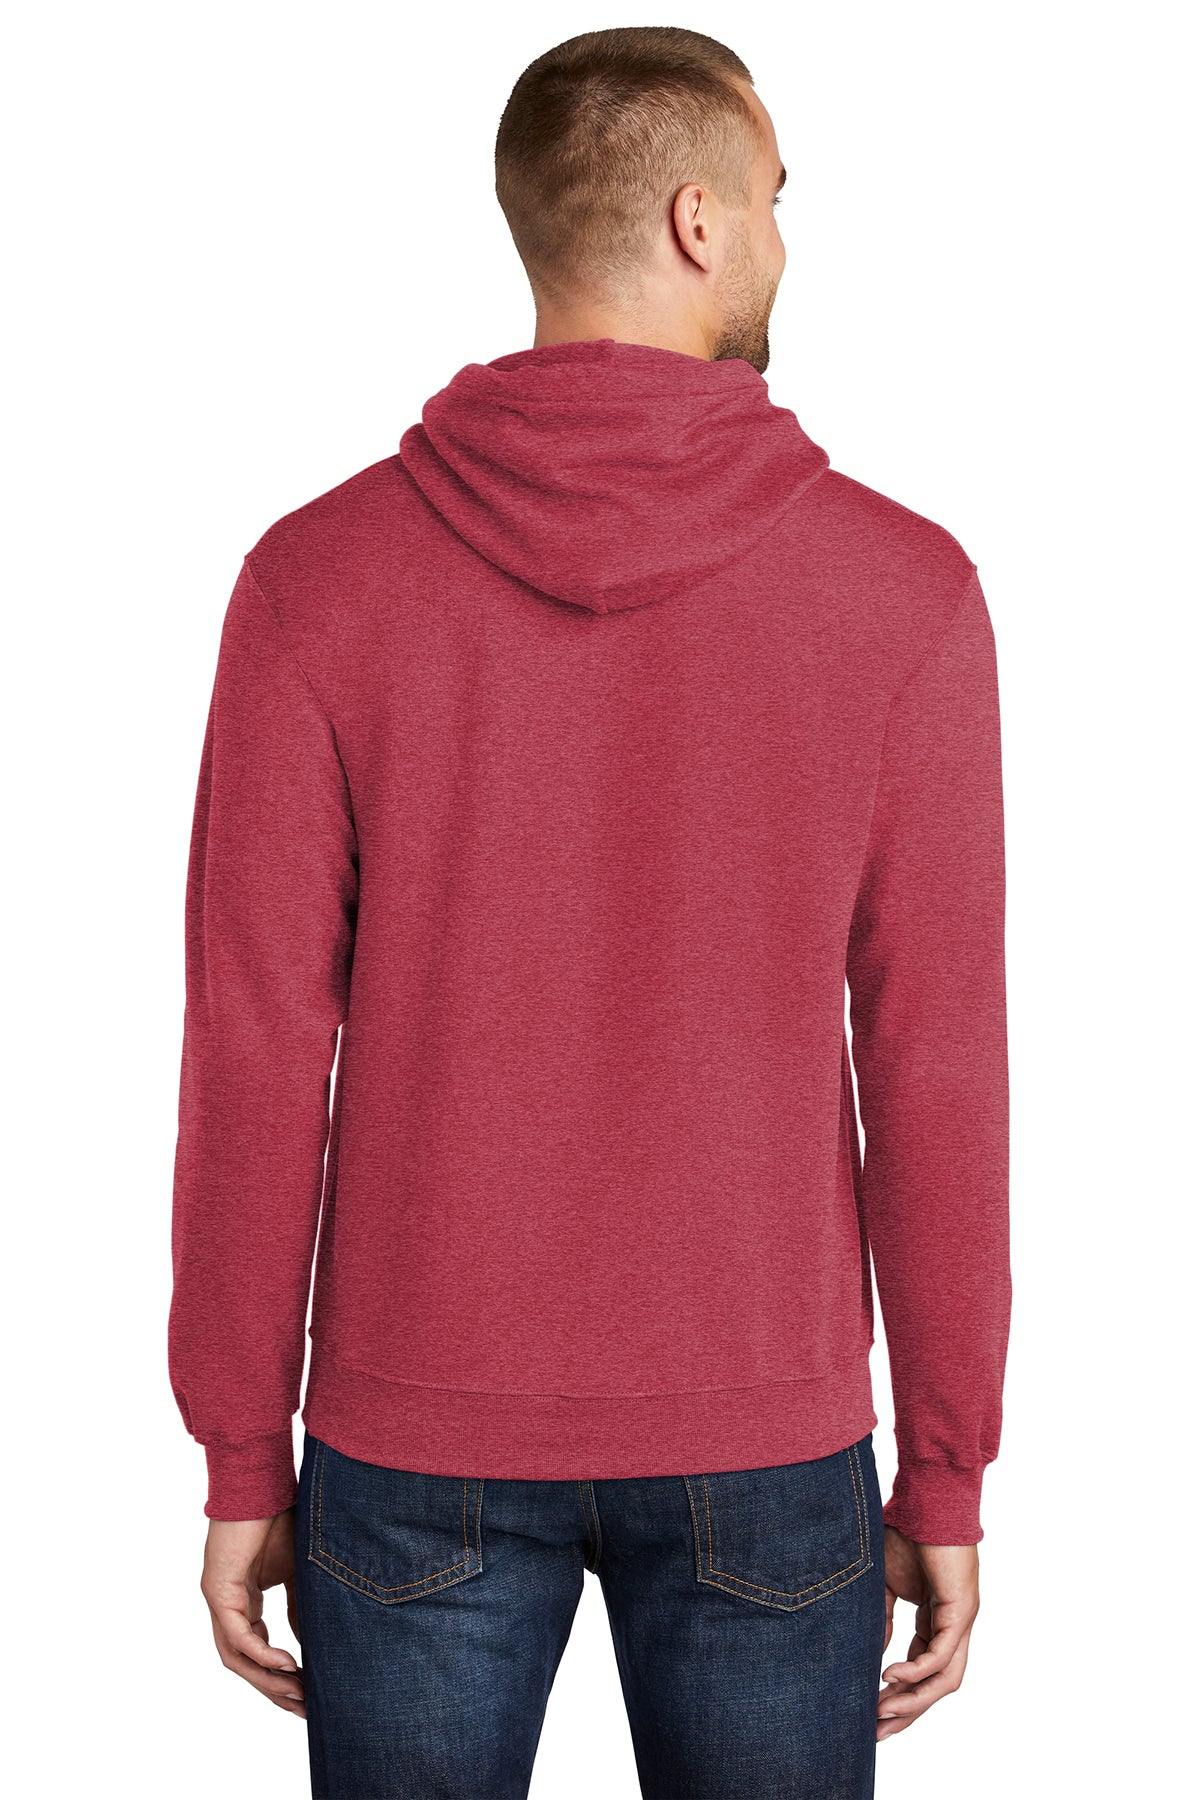 Port & Company PC78H Mens Core Fleece Hooded Sweatshirt Hoodie Heather Red Back